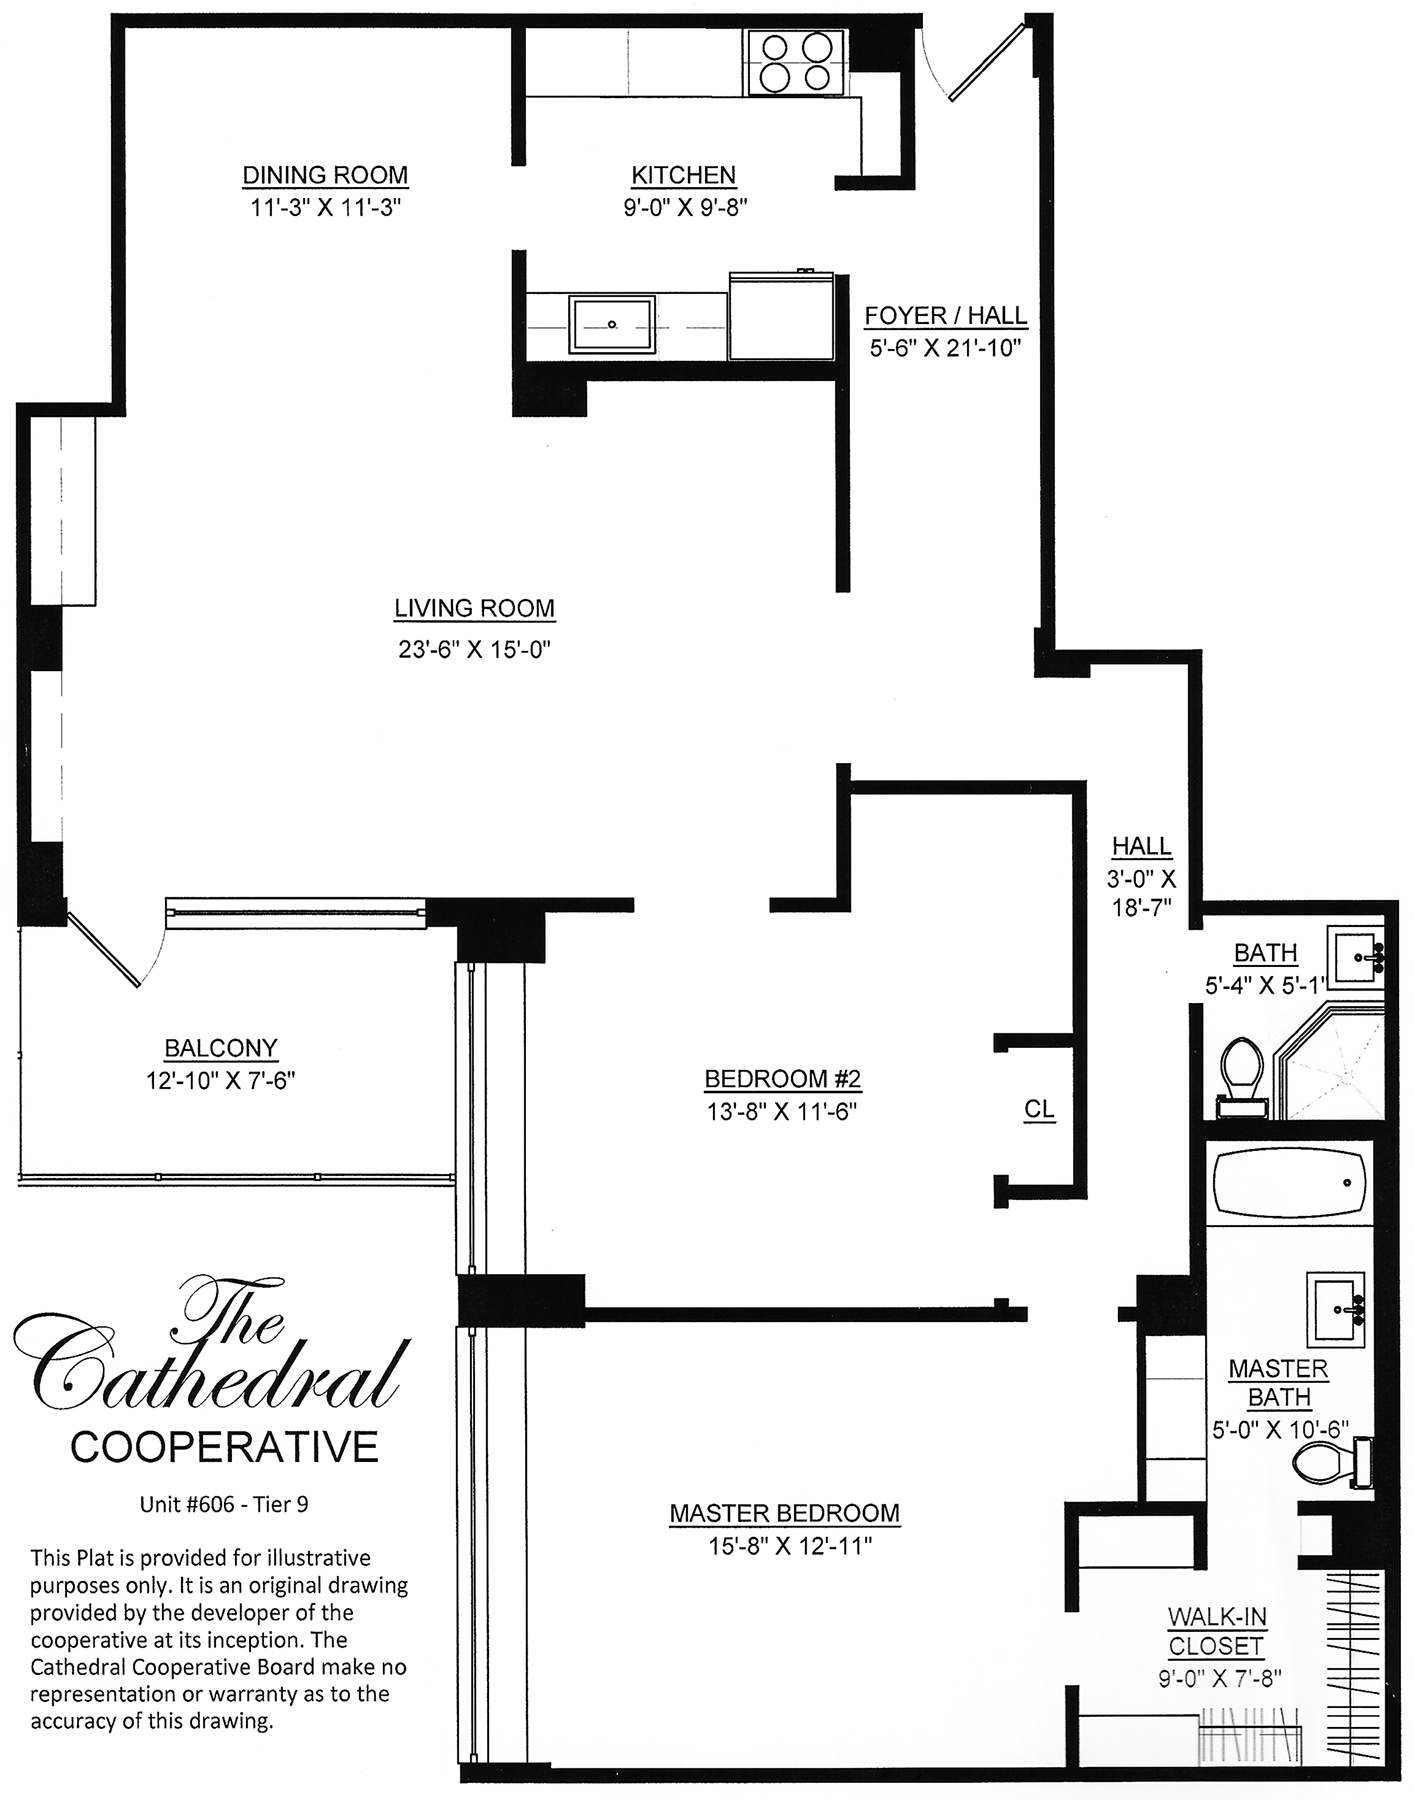 27_Cathedral Cooperative Unit 606 Floor Plan.png